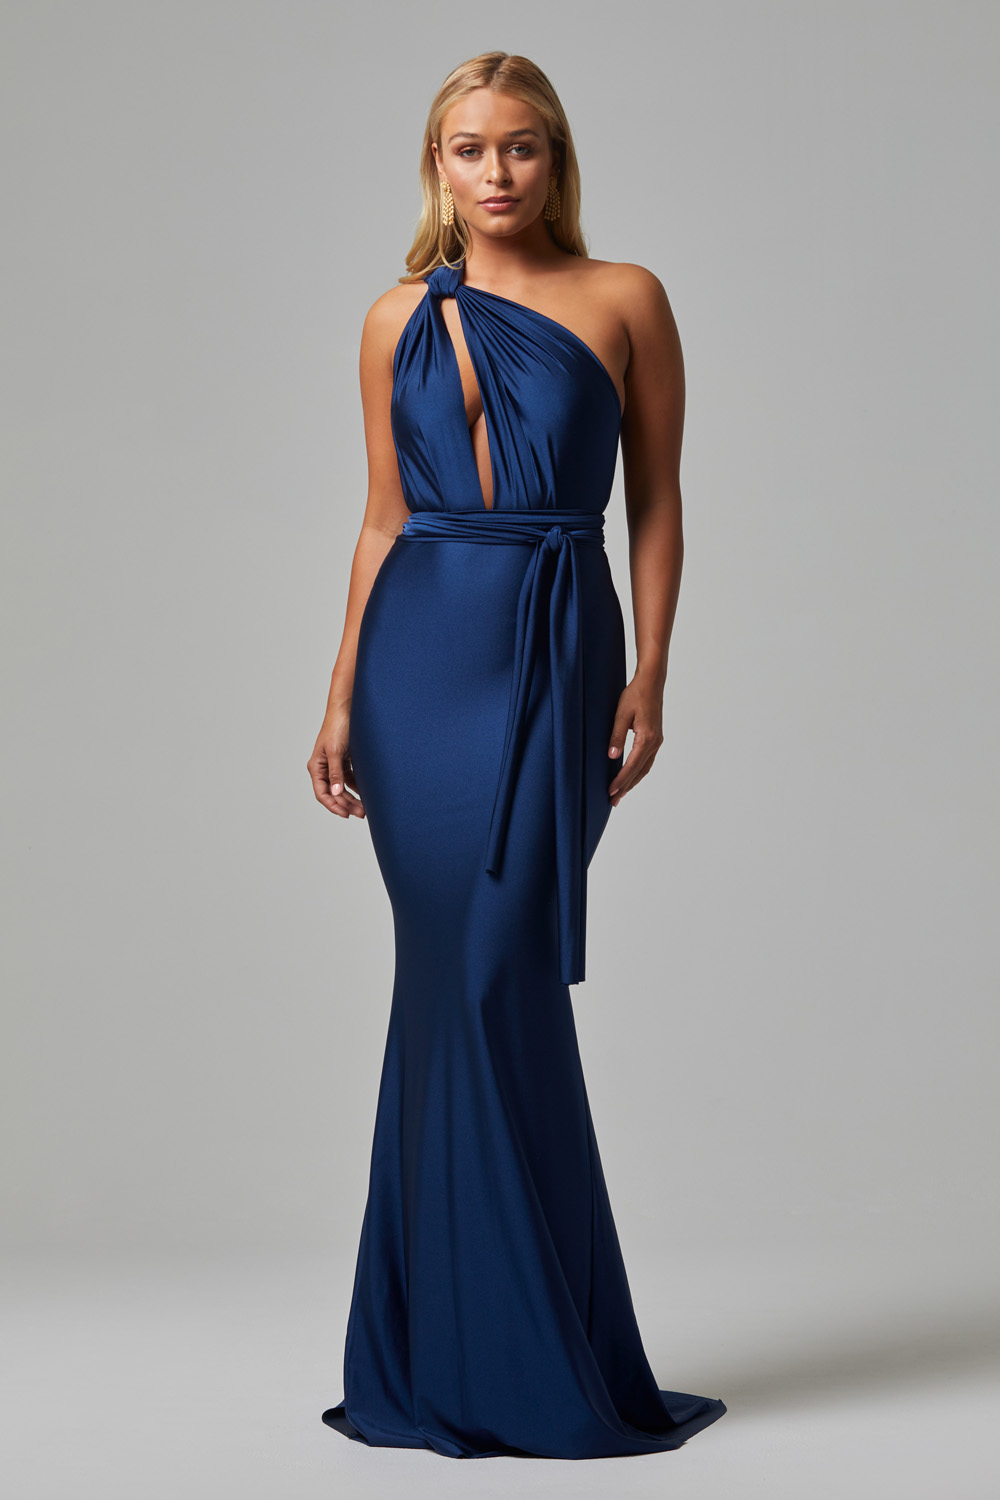 ETERNITY Fitted Wrap Formal Dress NAVY (1)